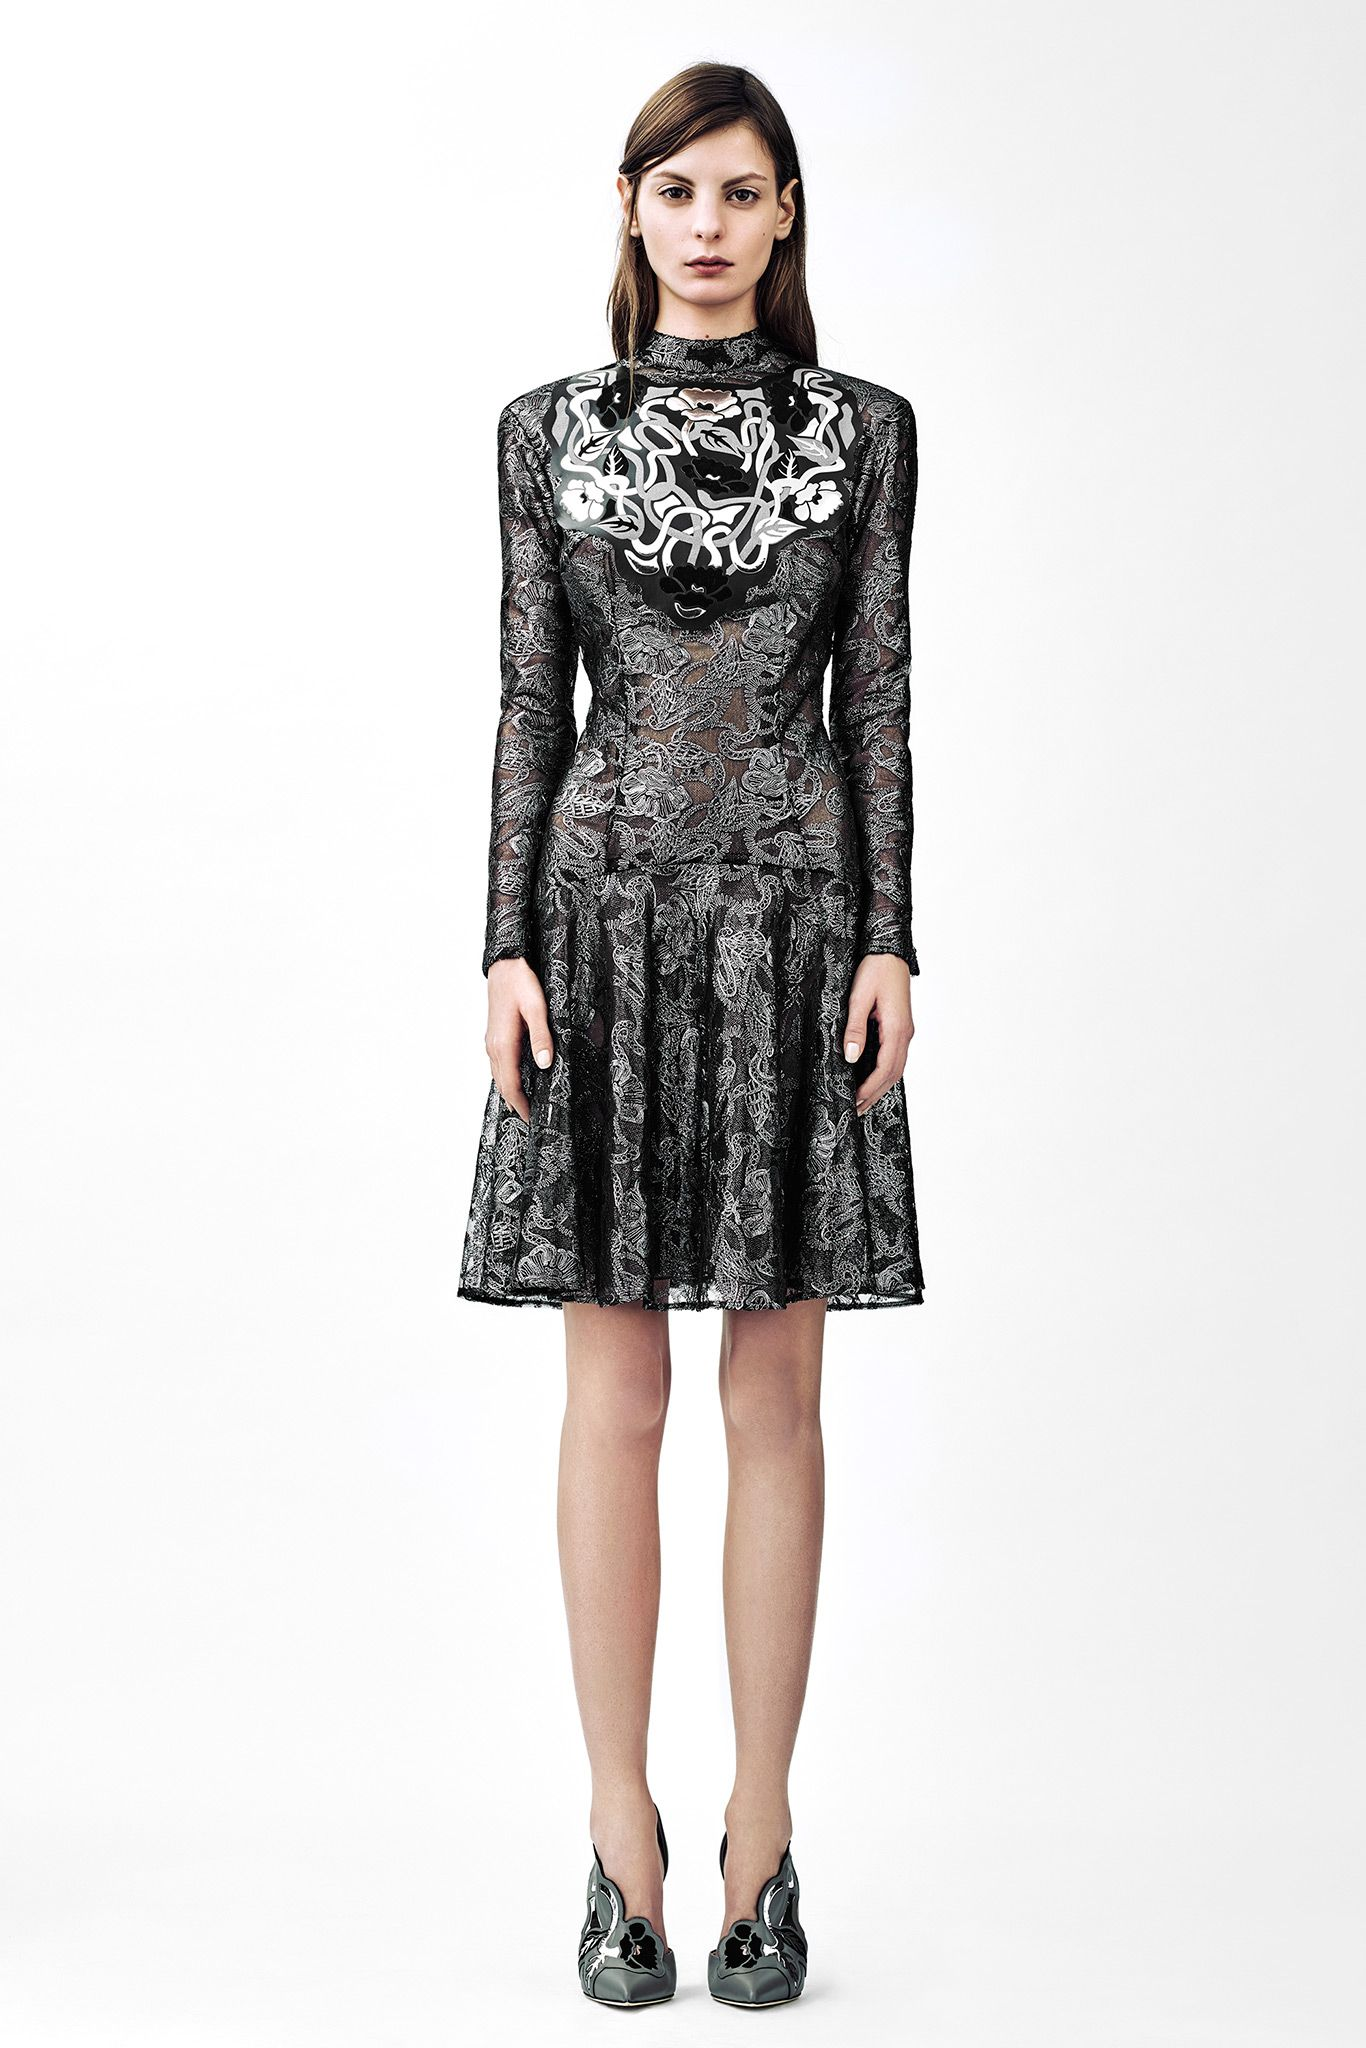 Christopher Kane - Pre-Fall 2015 - Look 33 of 35